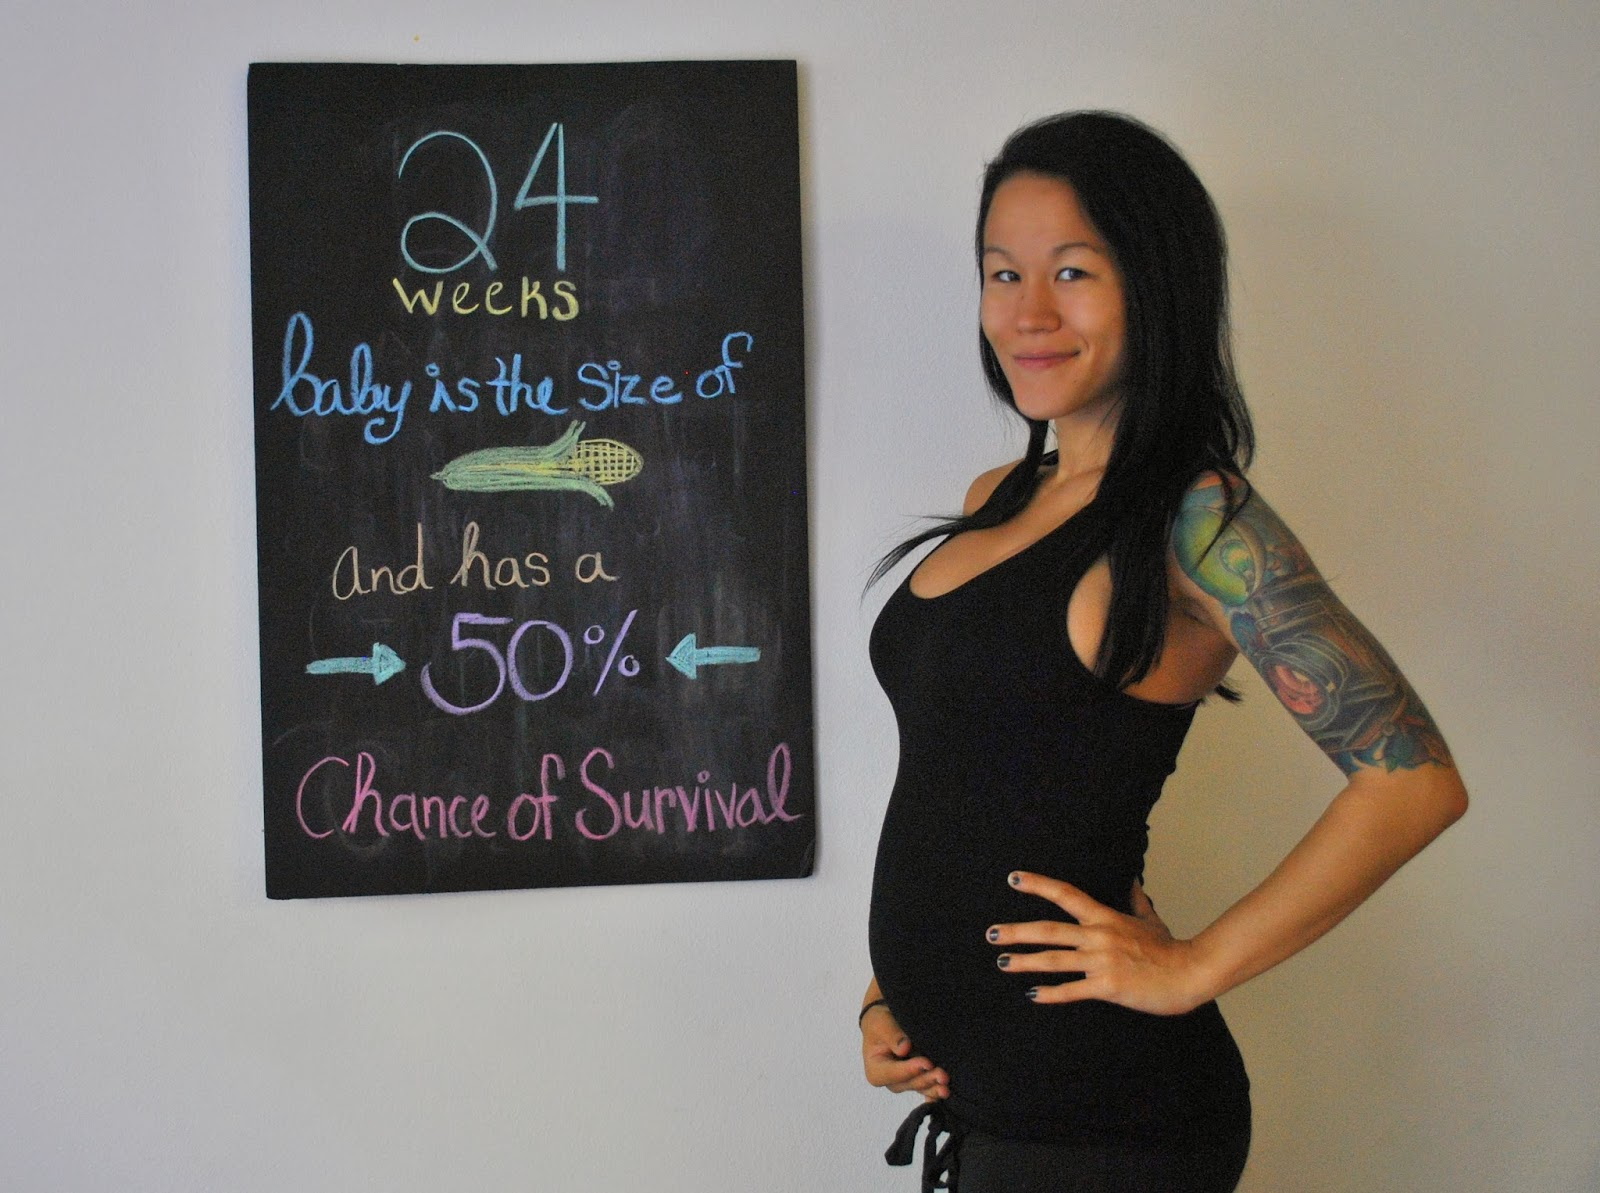 Diary of a Fit Mommy: 24 Weeks Pregnancy Chalkboard Update